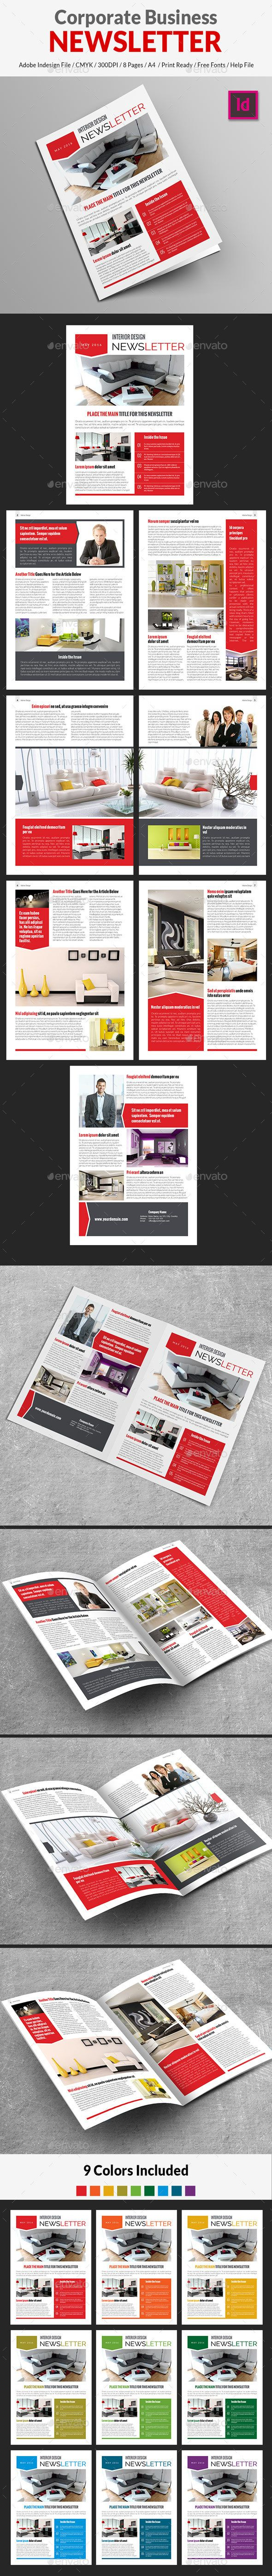 Corporate Business Newsletter - Newsletters Print Templates Download here : https://graphicriver.net/item/corporate-business-newsletter/16208905?s_rank=96&ref=Al-fatih